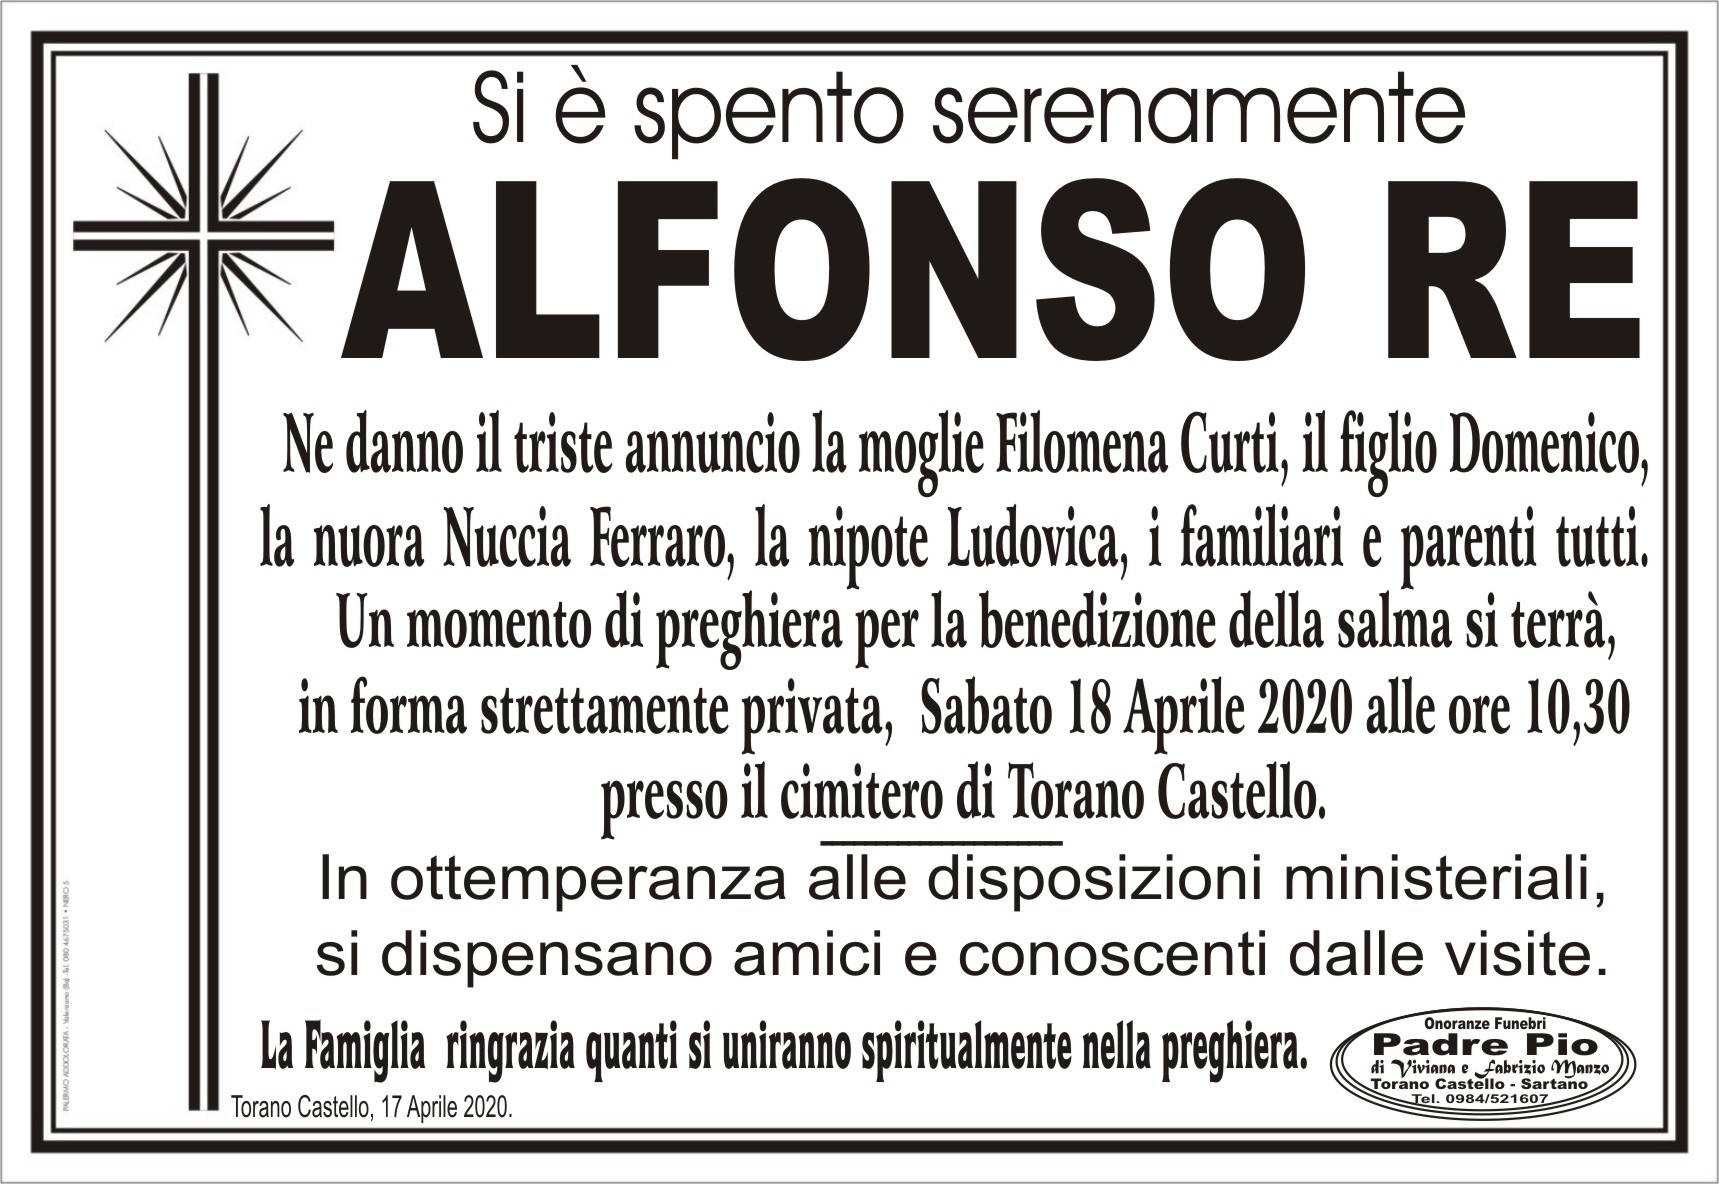 Alfonso Re